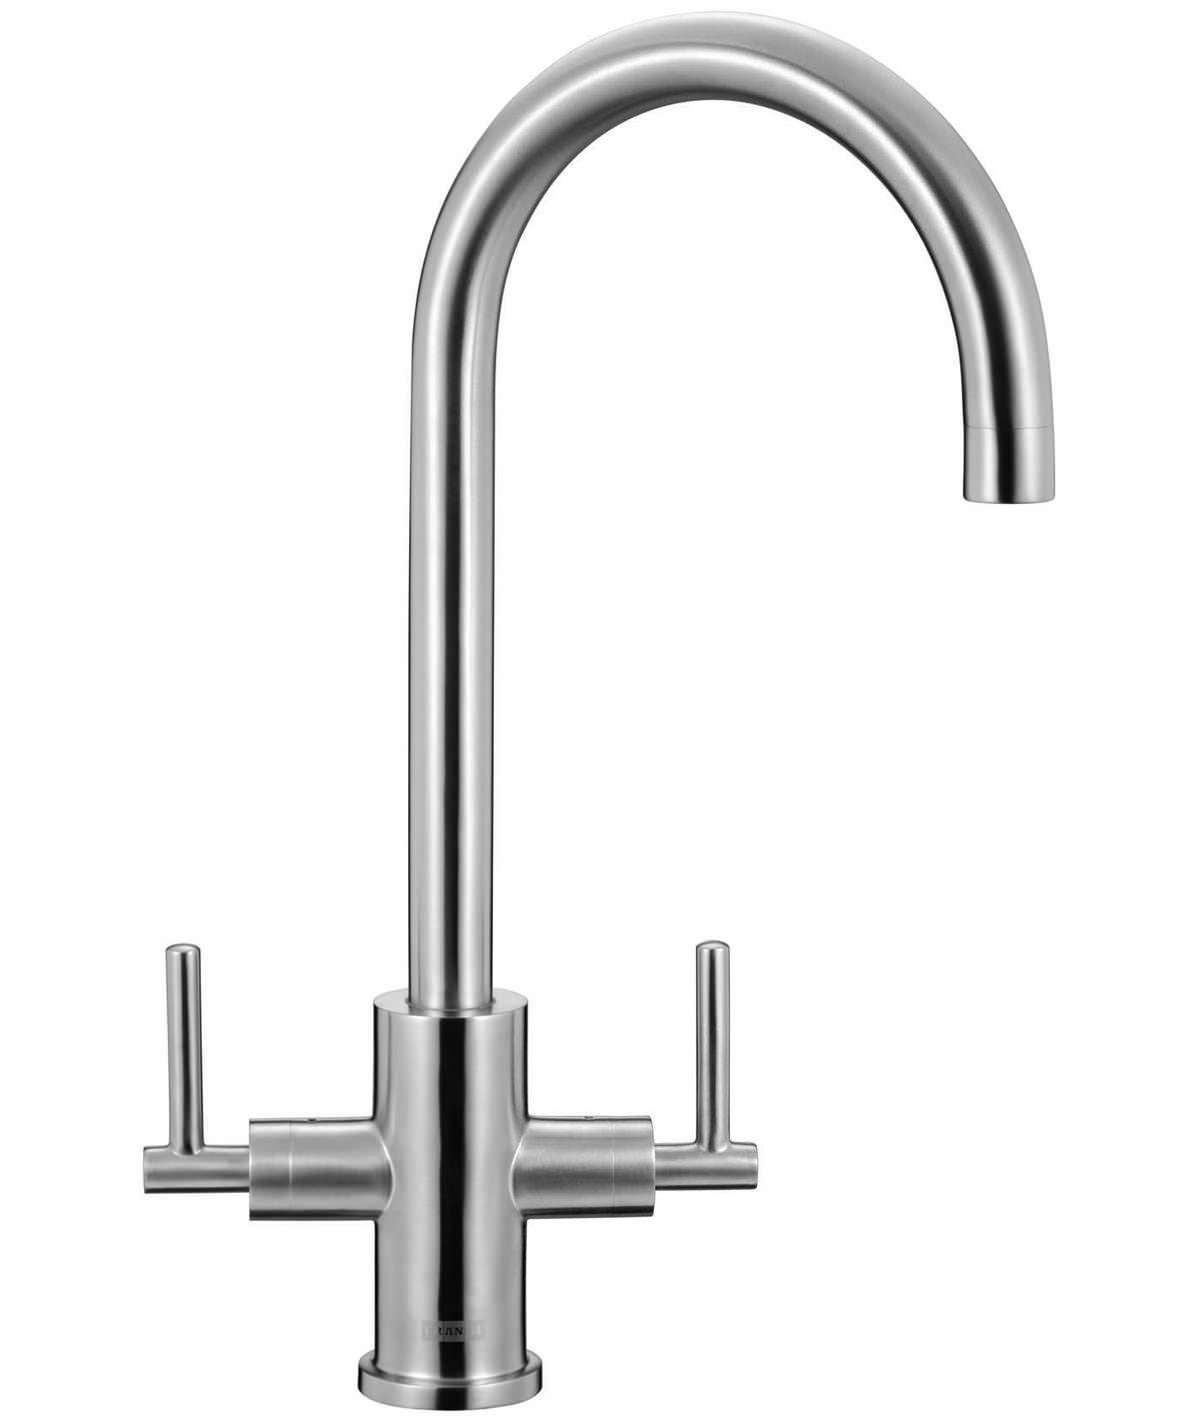 Franke Kitchen Mixer : qs supplies taps kitchen mixers franke panto kitchen sink mixer tap ...